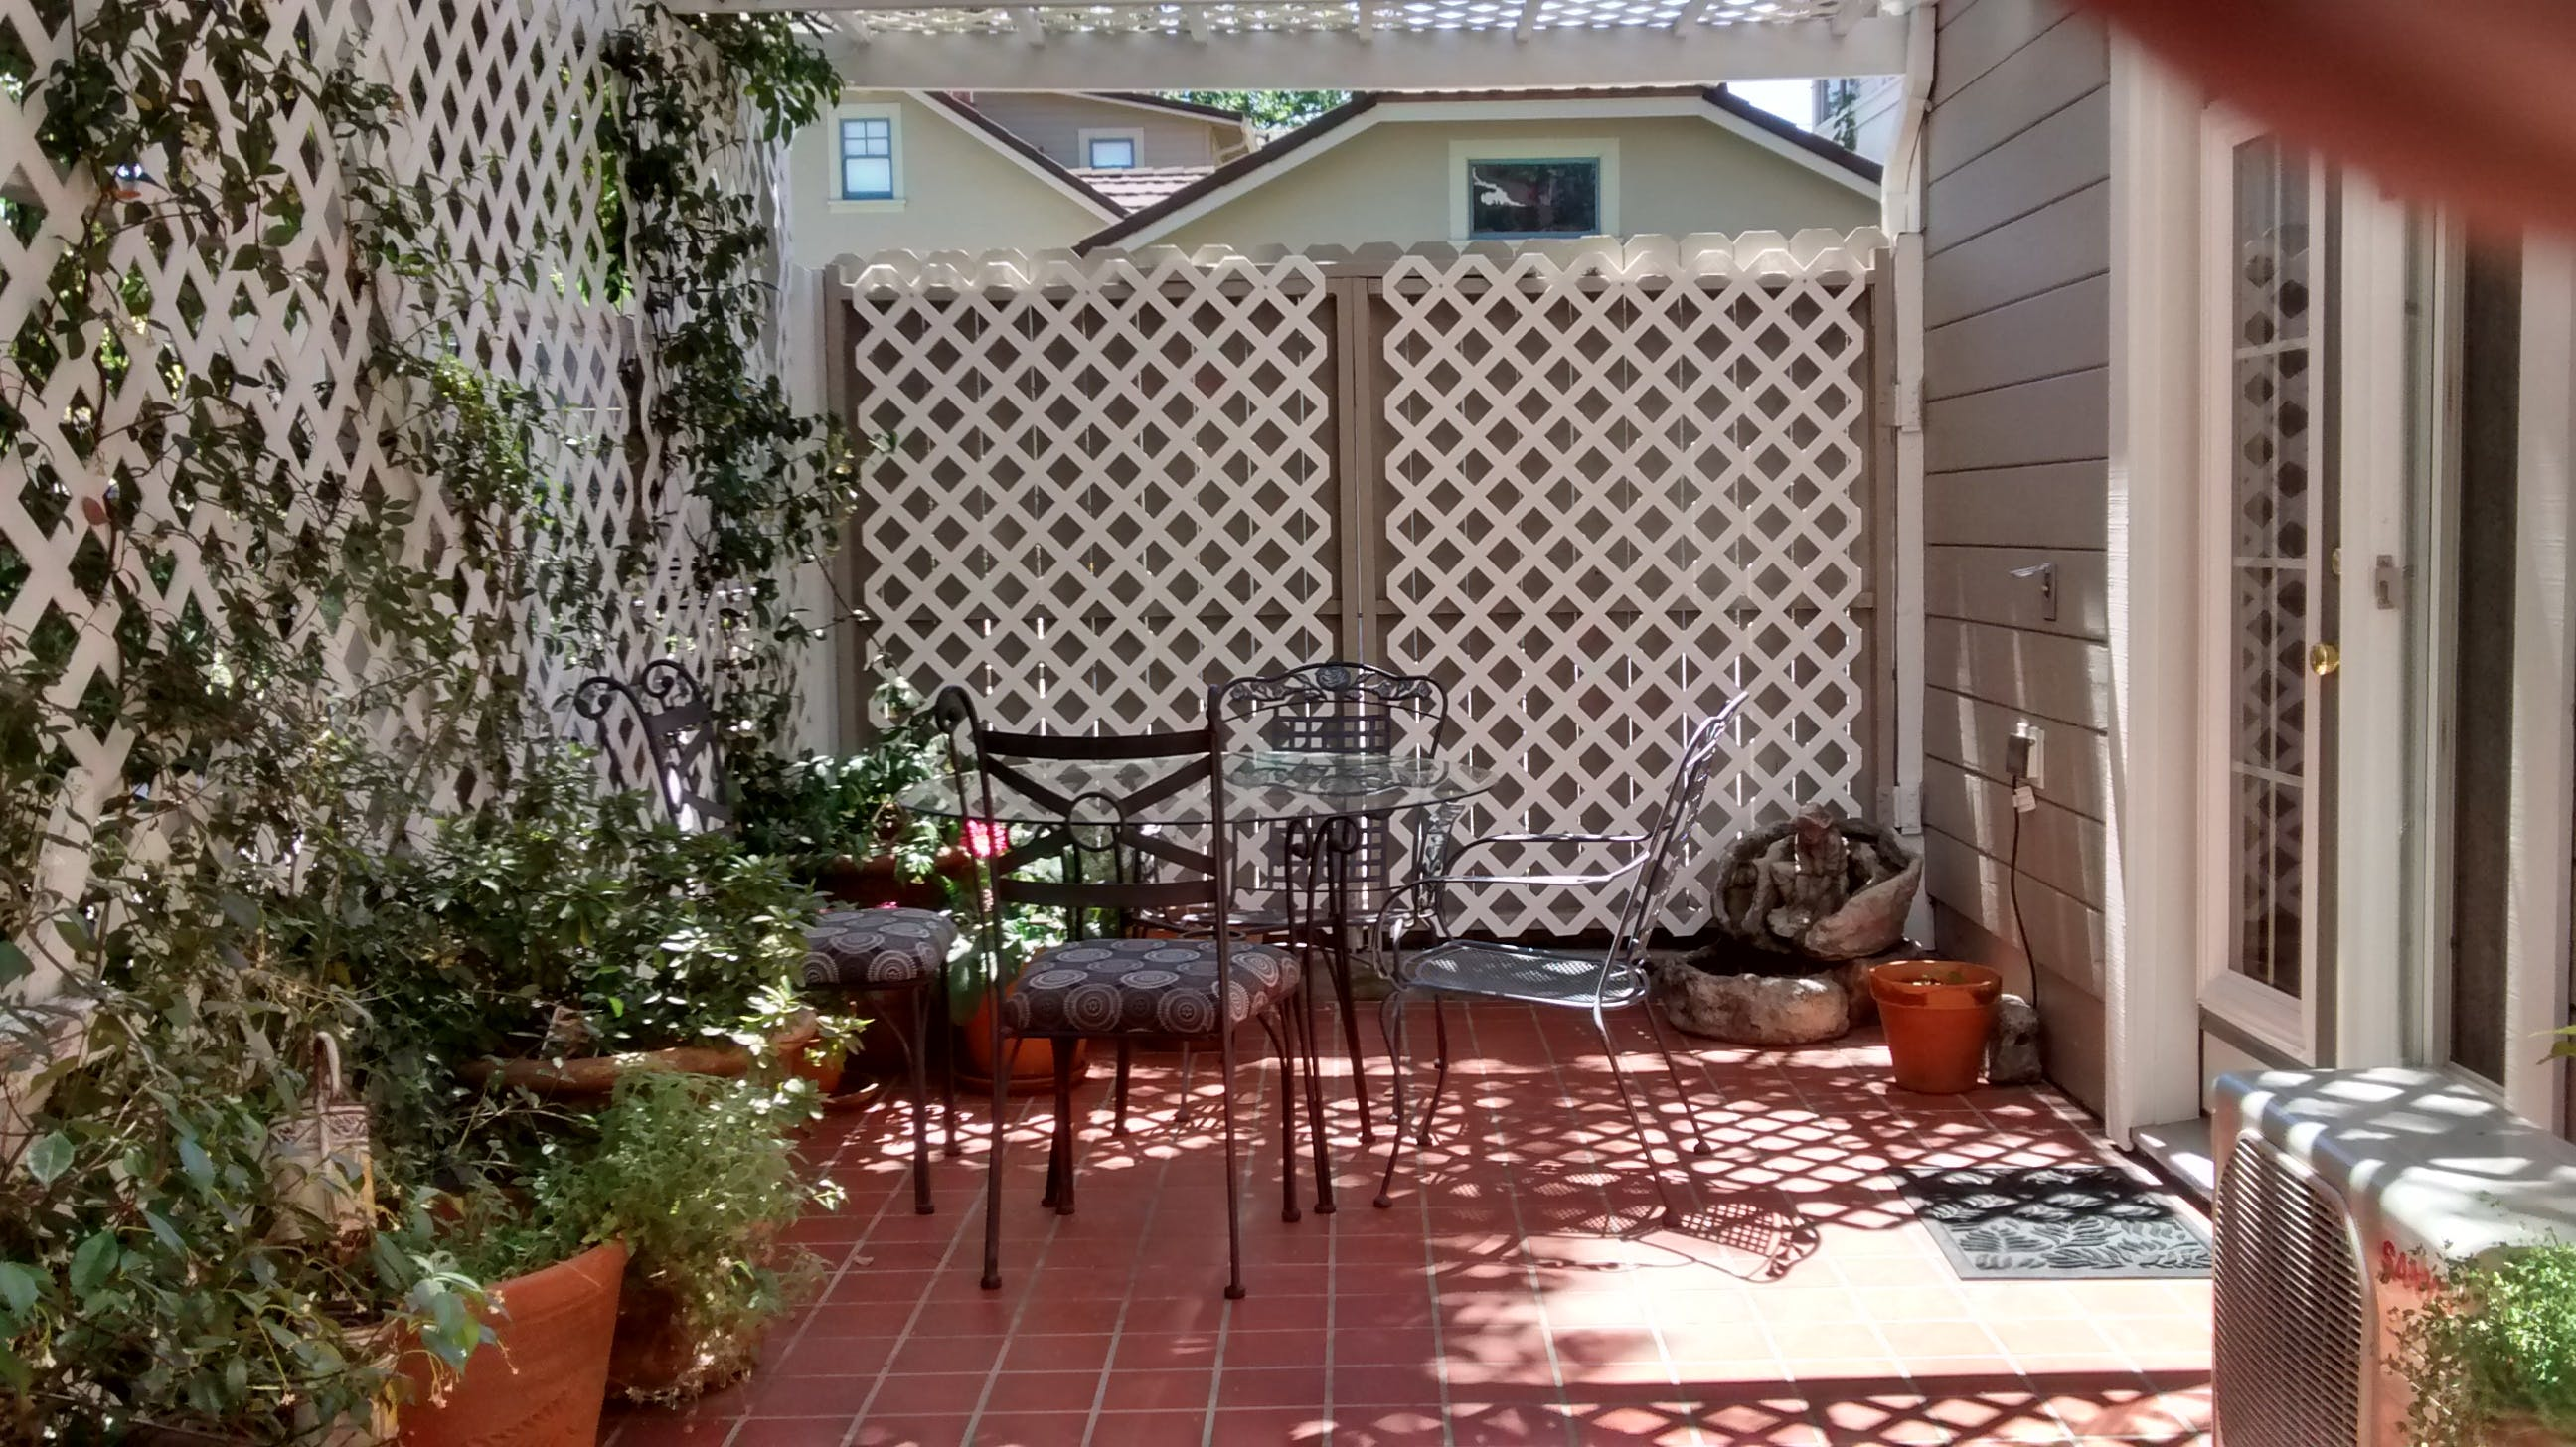 Prospector room private patio and entrance